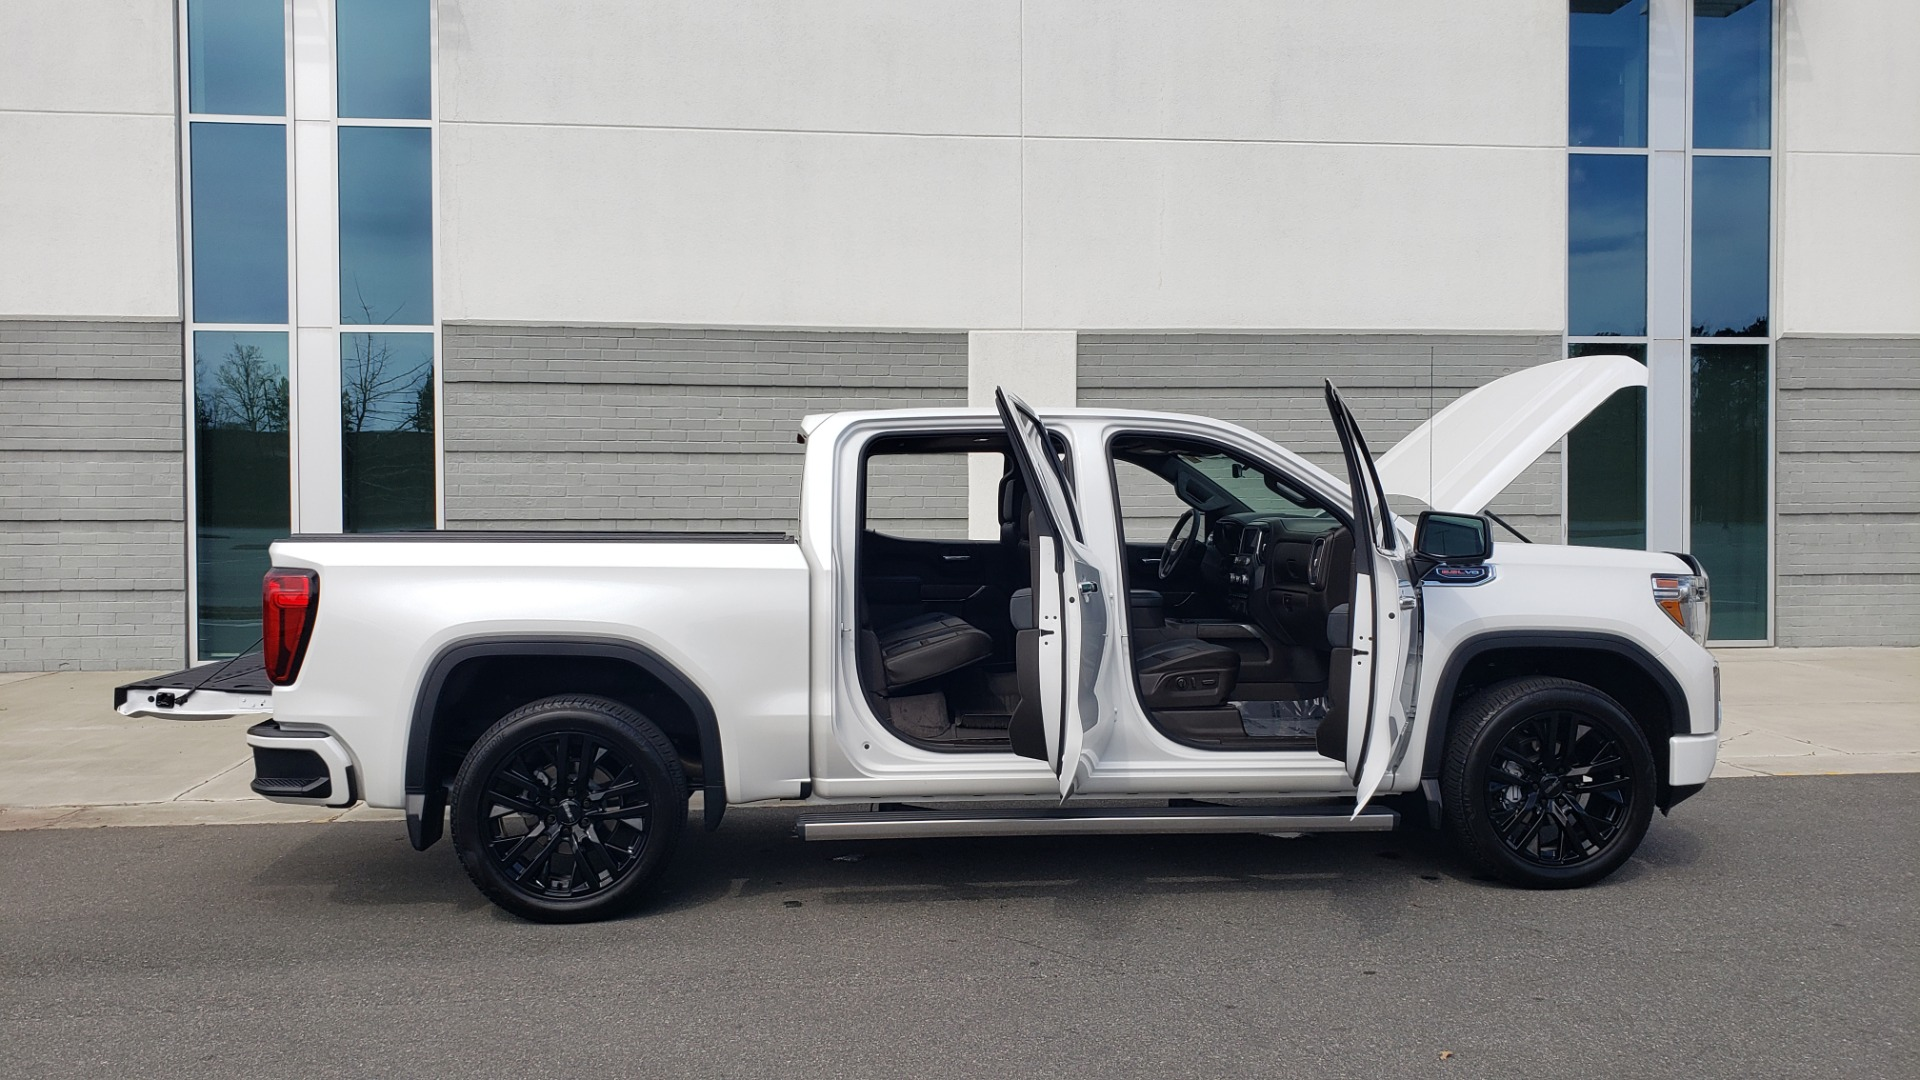 Used 2020 GMC SIERRA 1500 DENALI 4X4 CREWCAB 6.2L V8 / TECH / NAV / SUNROOF / DRVR ALERT II for sale Sold at Formula Imports in Charlotte NC 28227 14